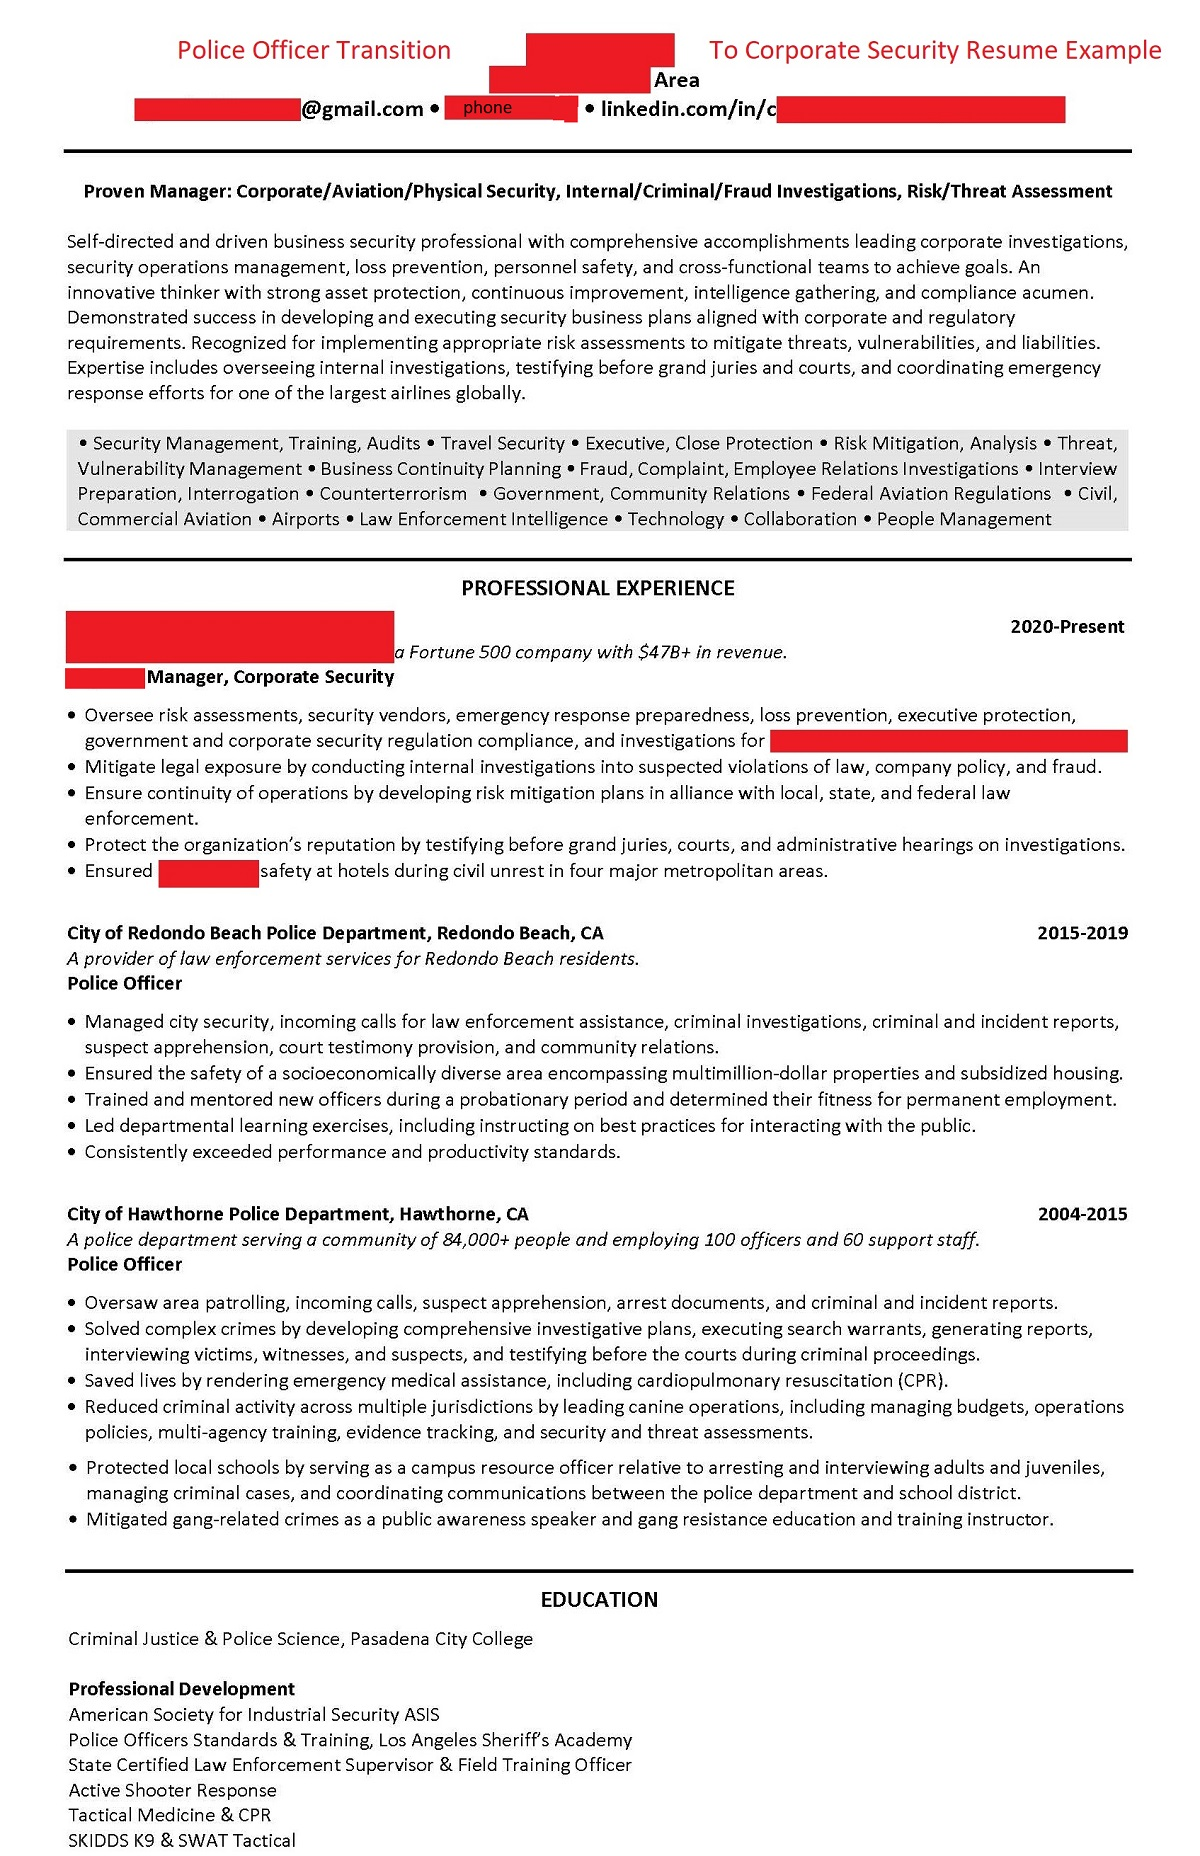 resume writing services for law enforcement officer examples and templates police example Resume Police Resume Writing Services